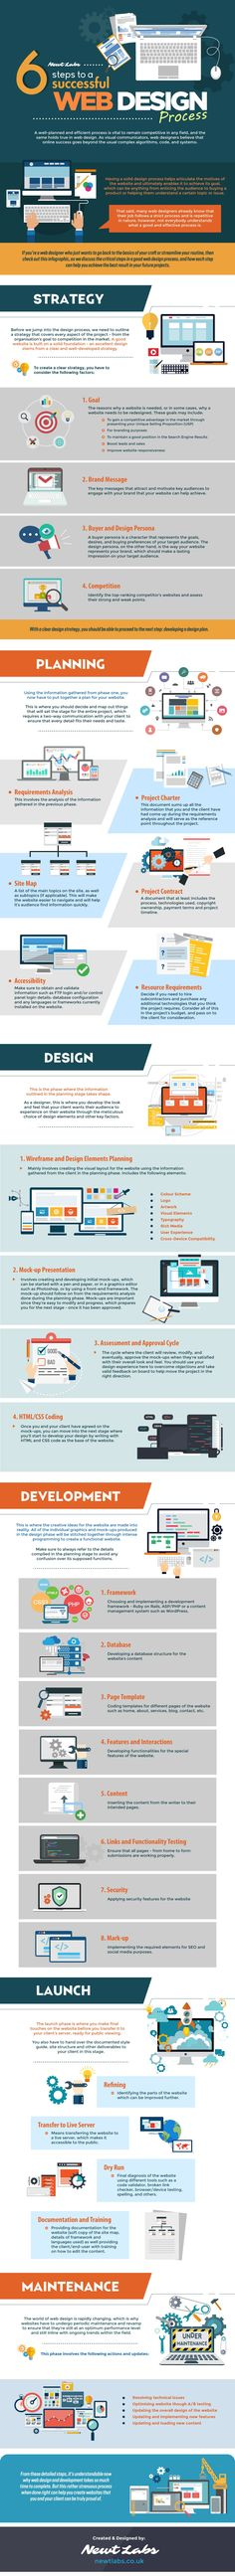 The Web Design Process: 6 Steps to a Successful Business Website [Infographic]